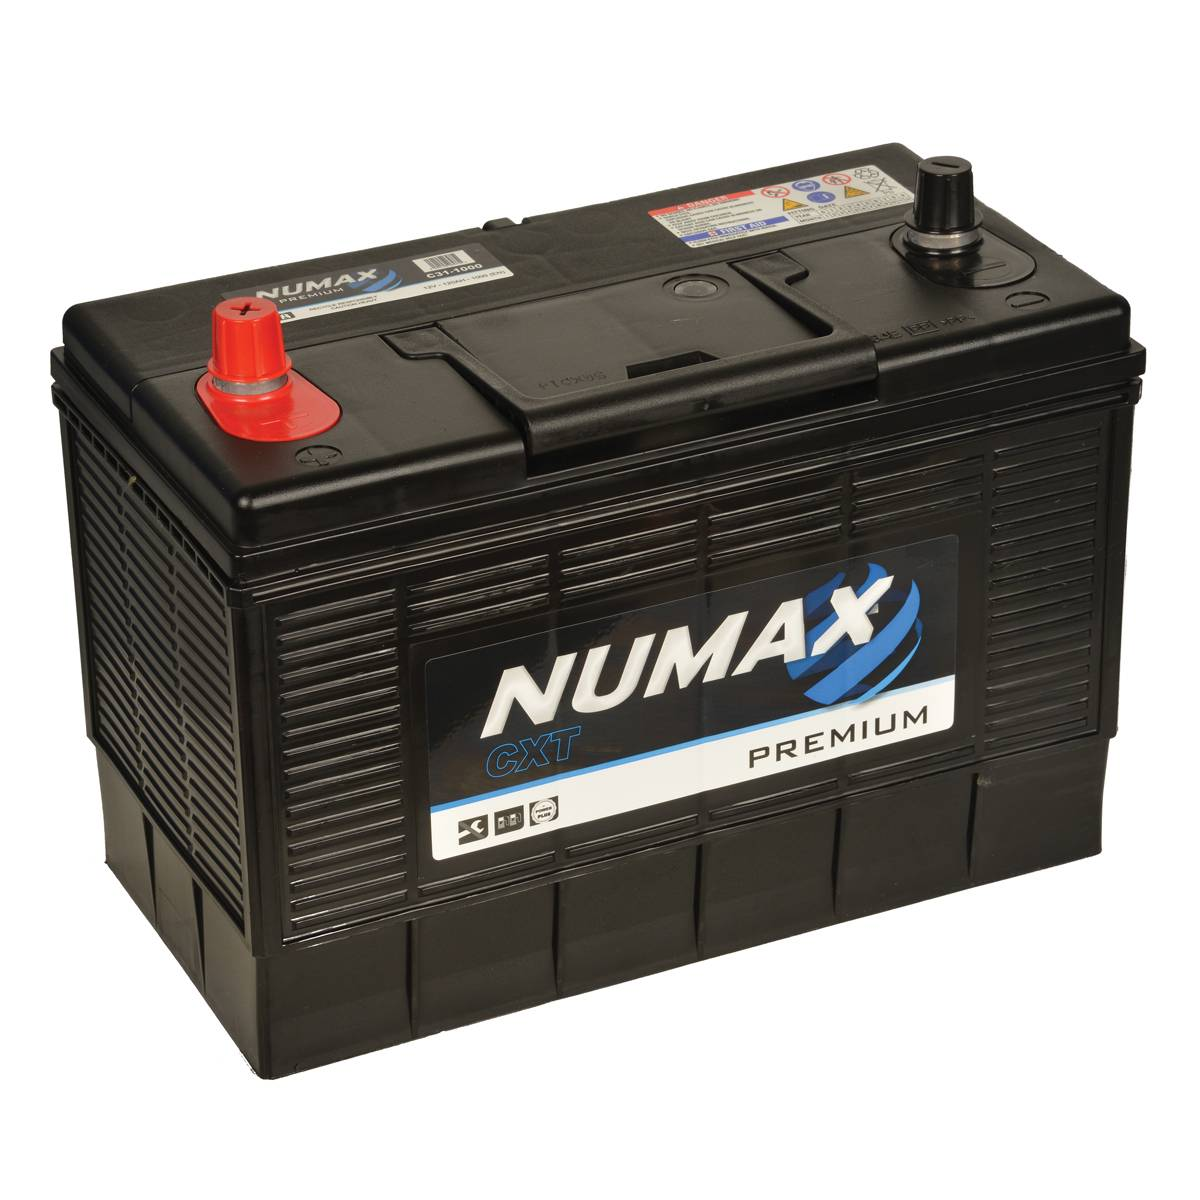 Numax C31-1000 12 Volt 105 Ah 920 CCA 3 Year Warranty Premium U.S. Size Car Van Battery